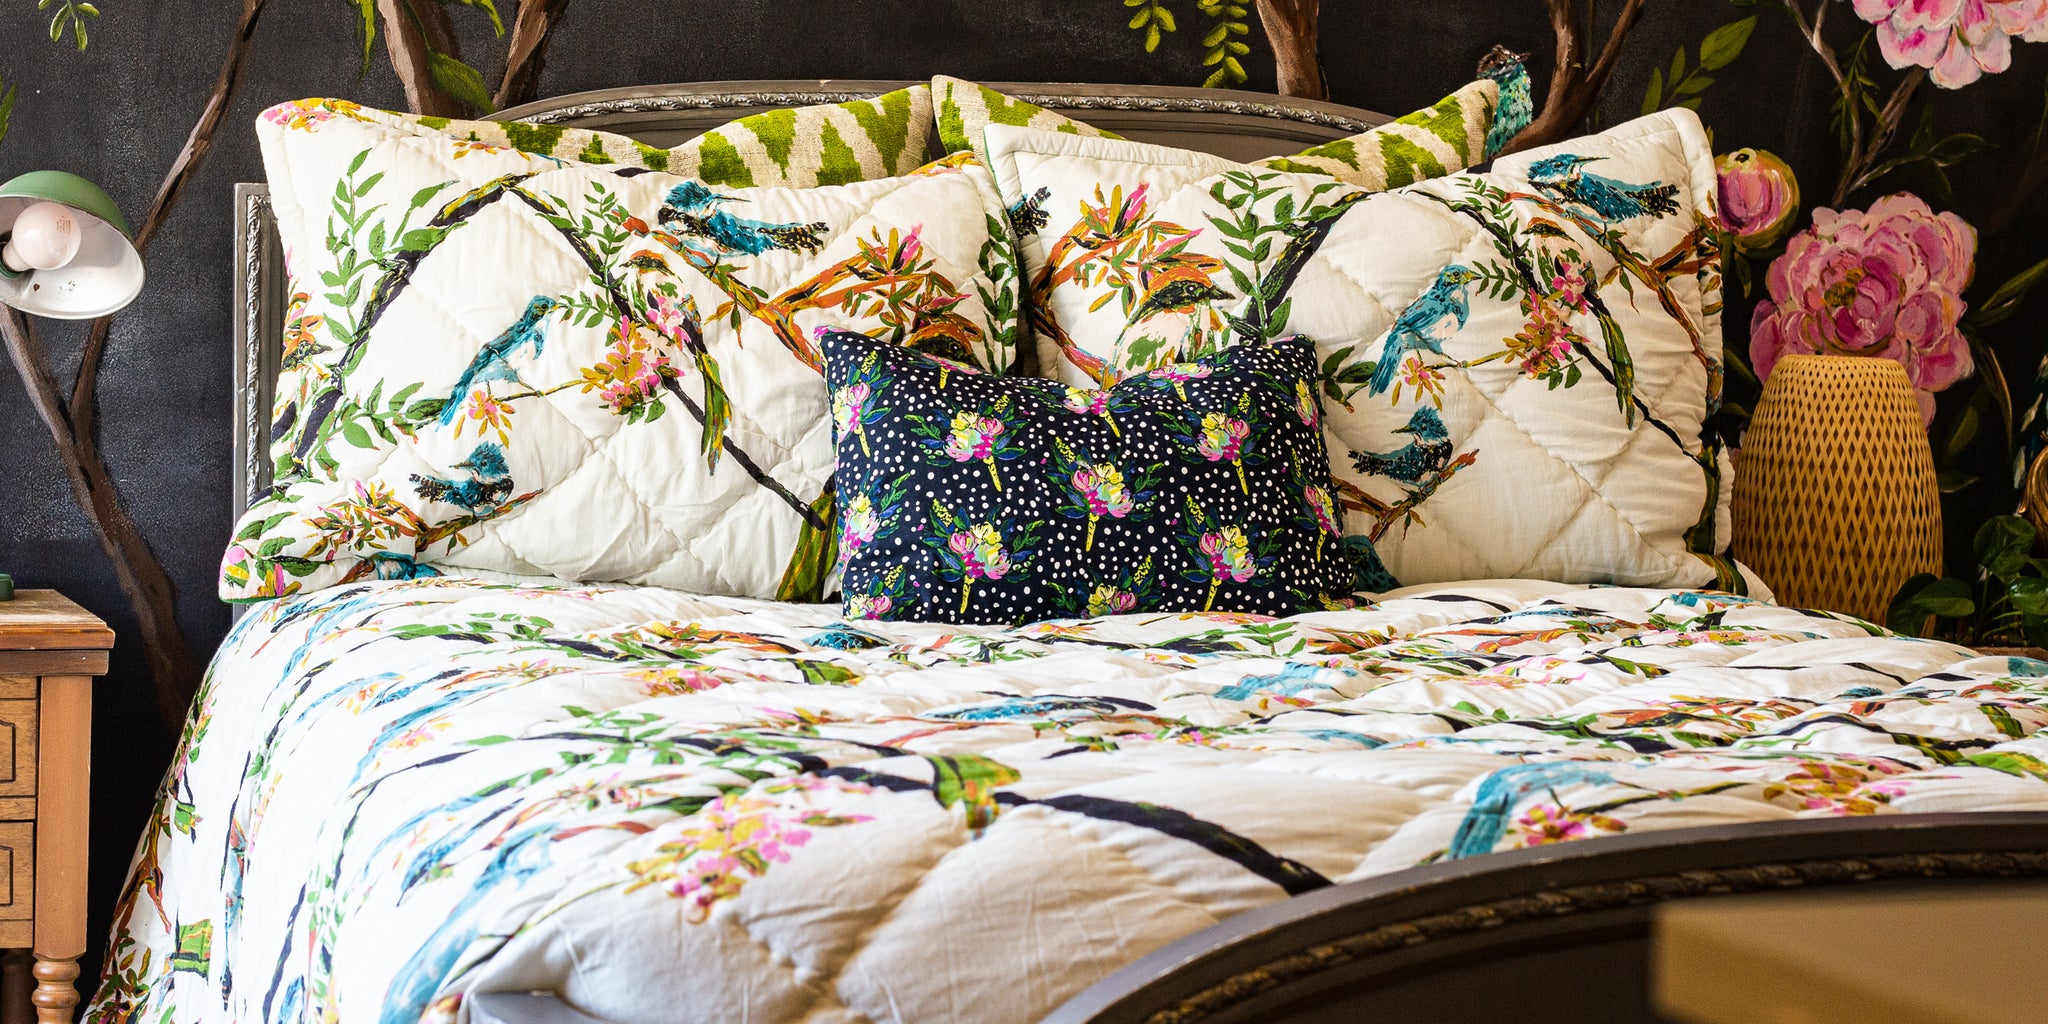 Bari J. quilt set for Maker's Collective